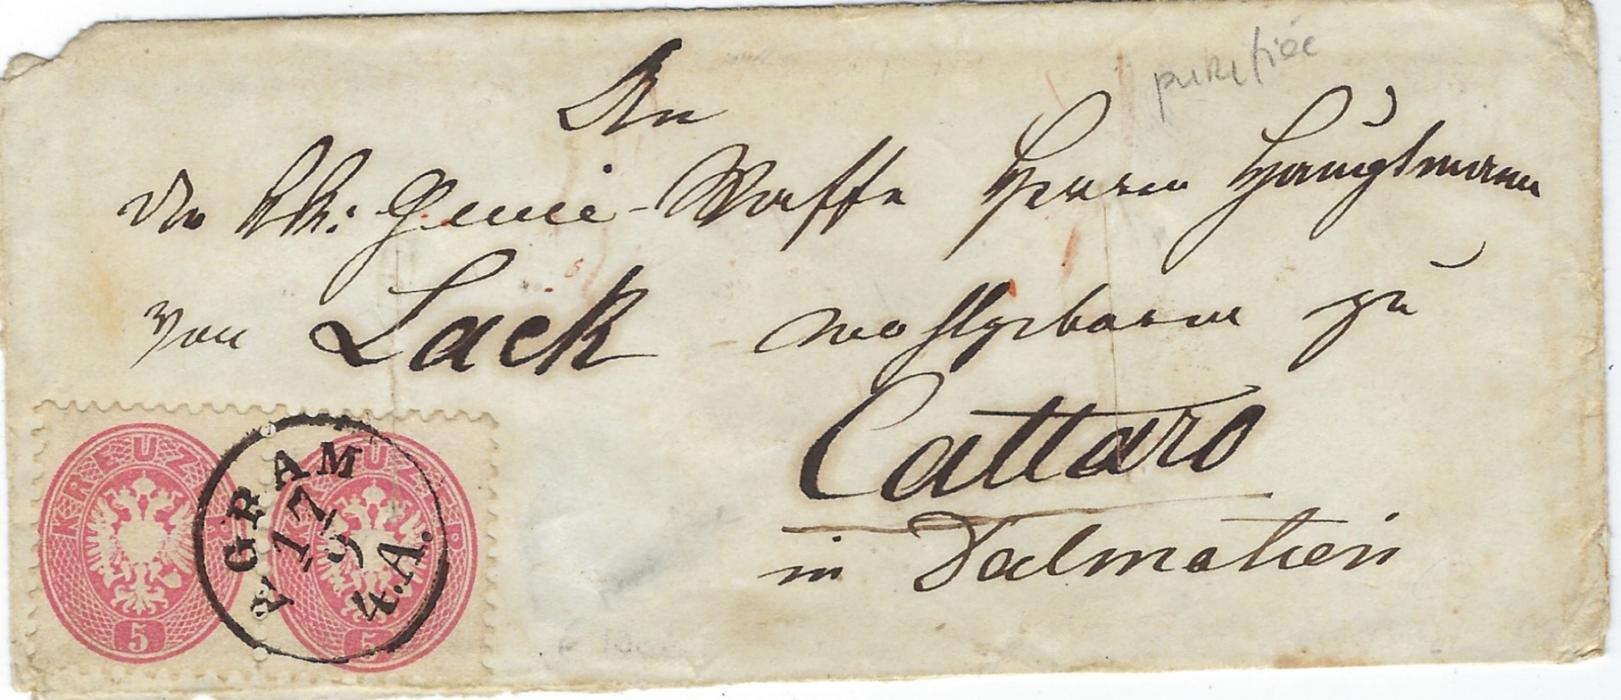 Austria (Disinfected Mail) 17/9 cover to Cattaro, in Dalmatien franked pair perf 9½ 5kr with Agram cds, reverse with Triest transit of 18/9 and two-line arrival of 24 Set. The envelope shows two vertical disinfection slits, the one at left passing through stamp. The cover was disinfected at Castel Lastra in Cattaro Bay during a short outbreak of Cholera.